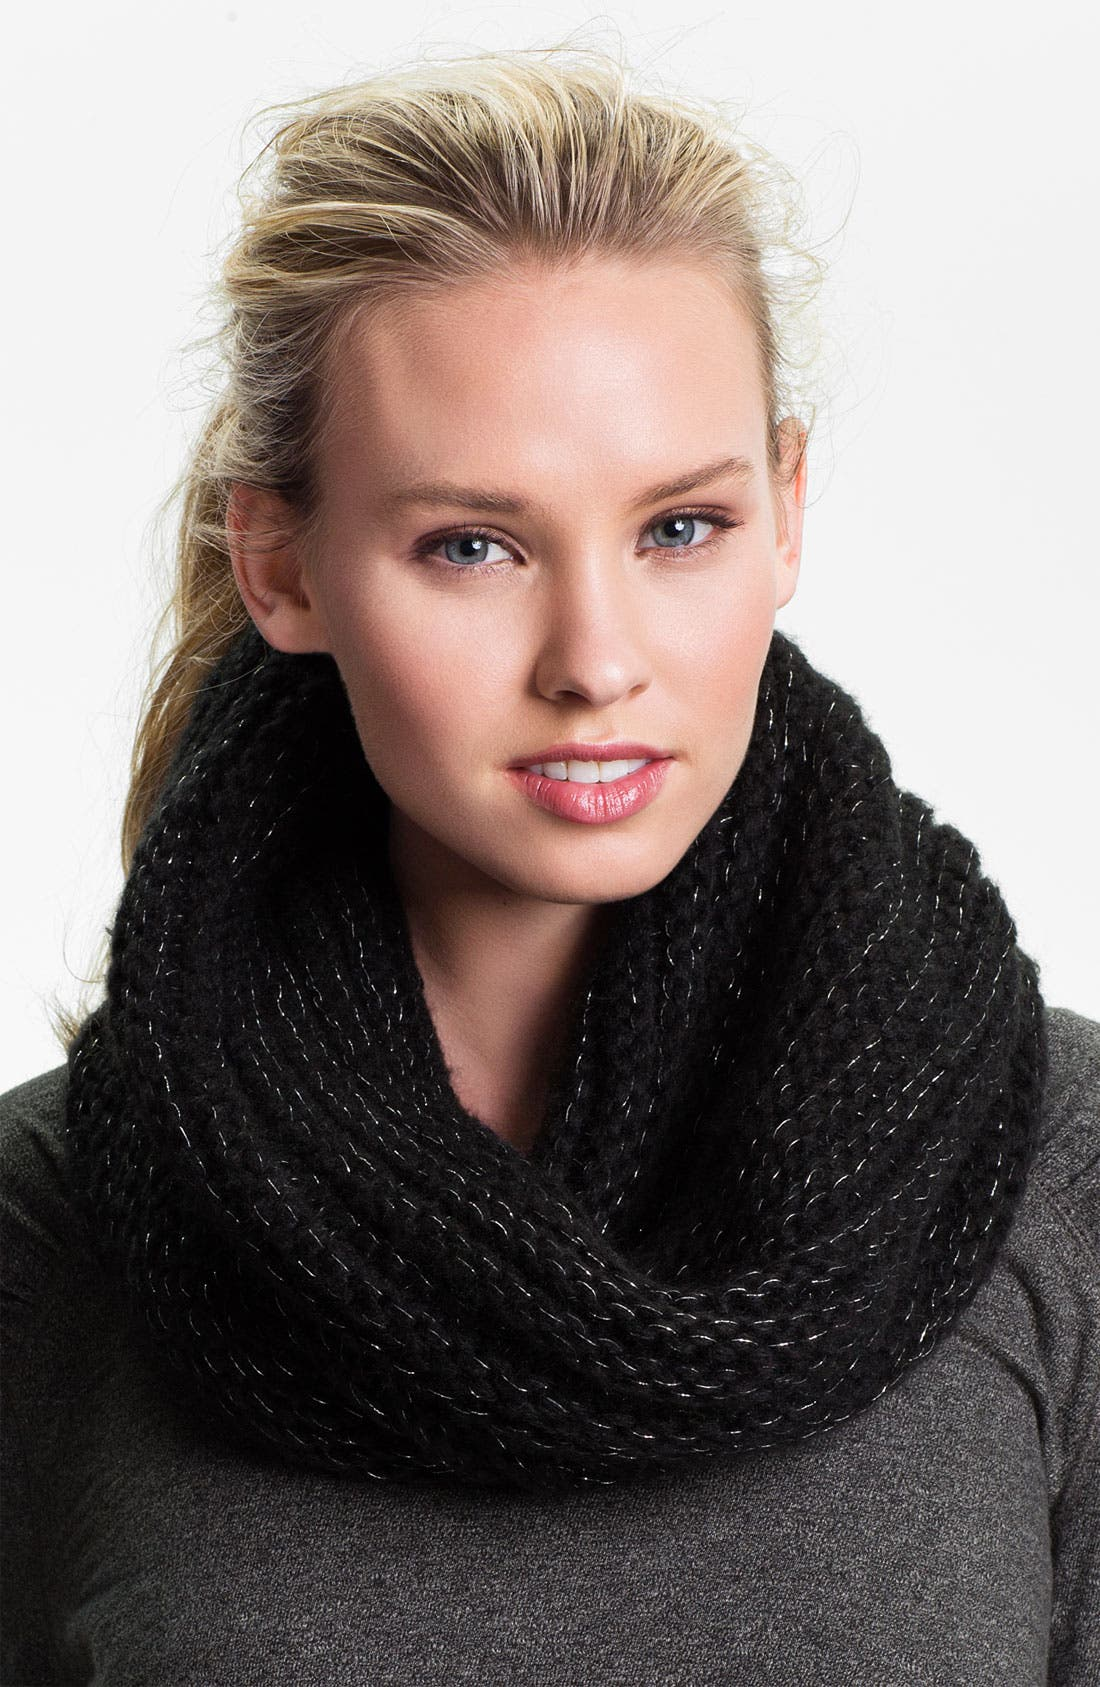 Alternate Image 1 Selected - Zella Infinity Scarf